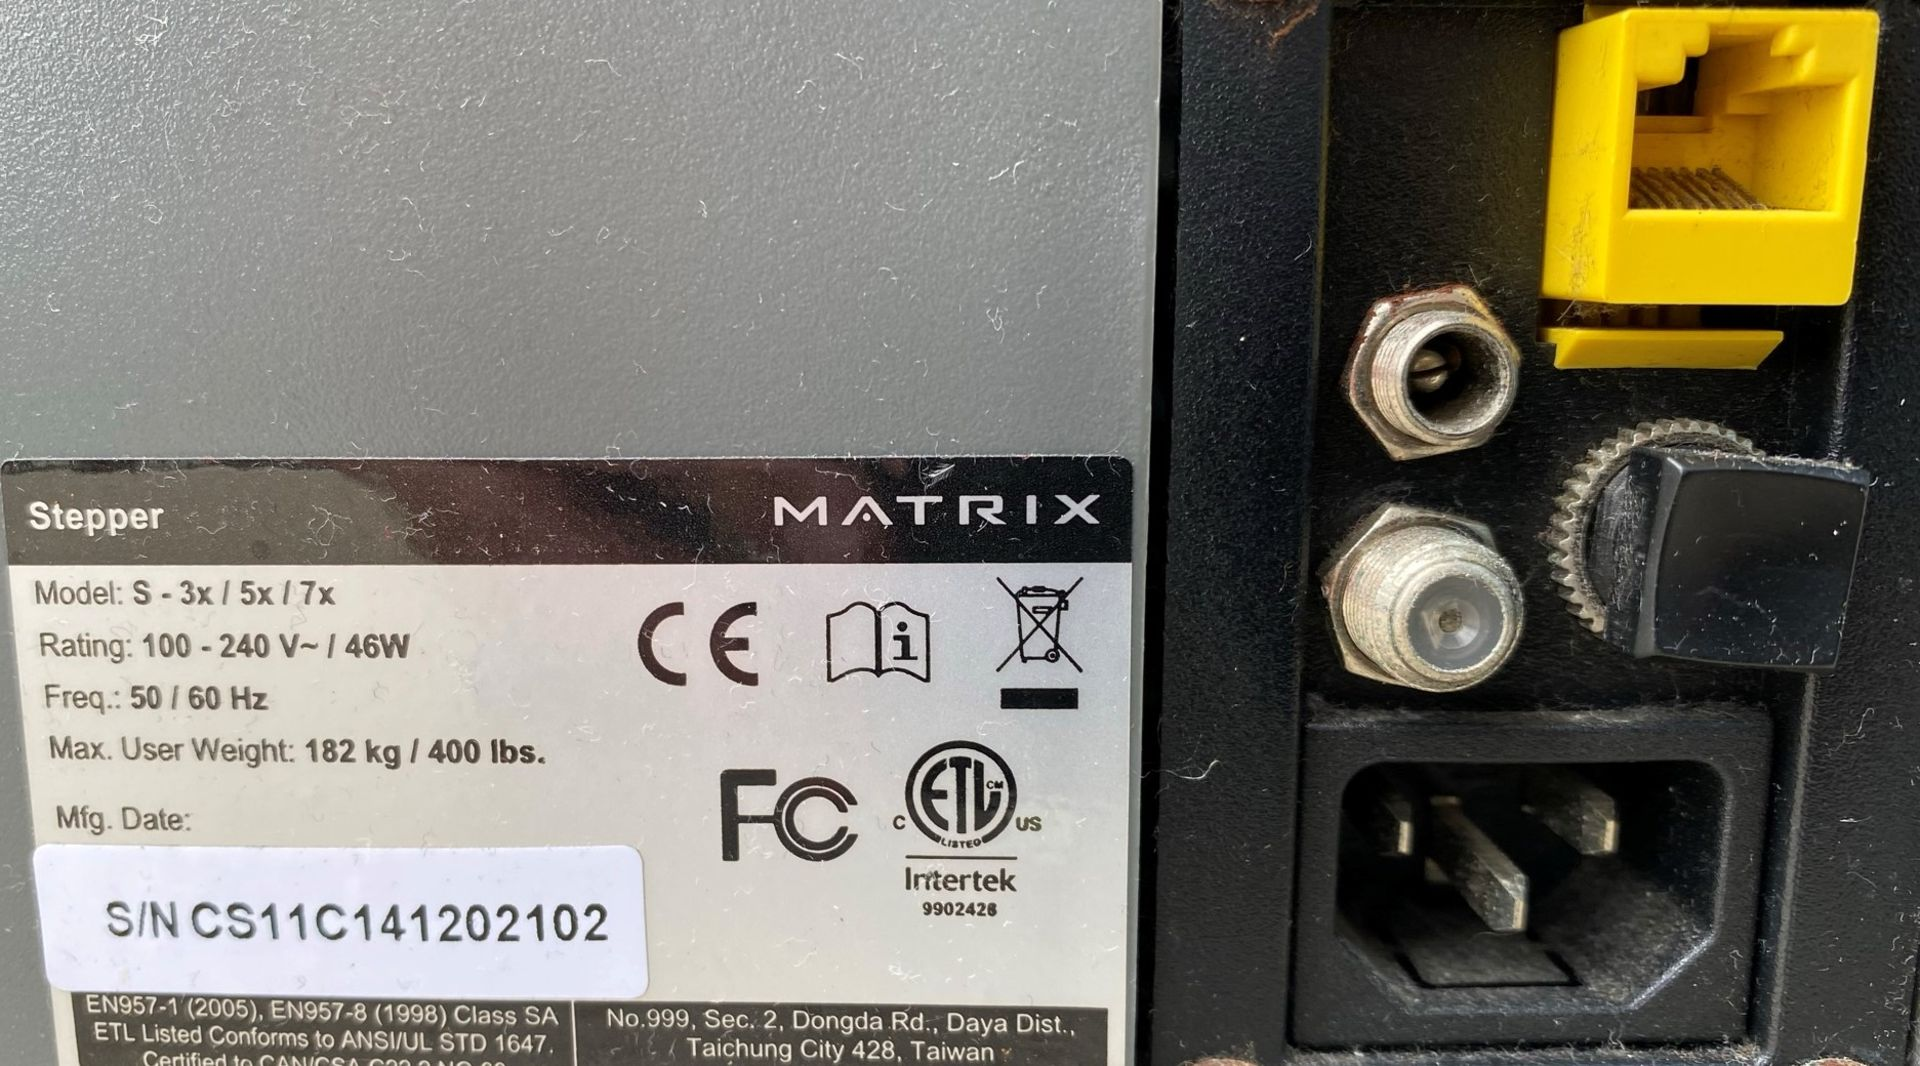 A Matrix S5x Stepper Further Information Stepper has been tested briefly. - Image 5 of 5